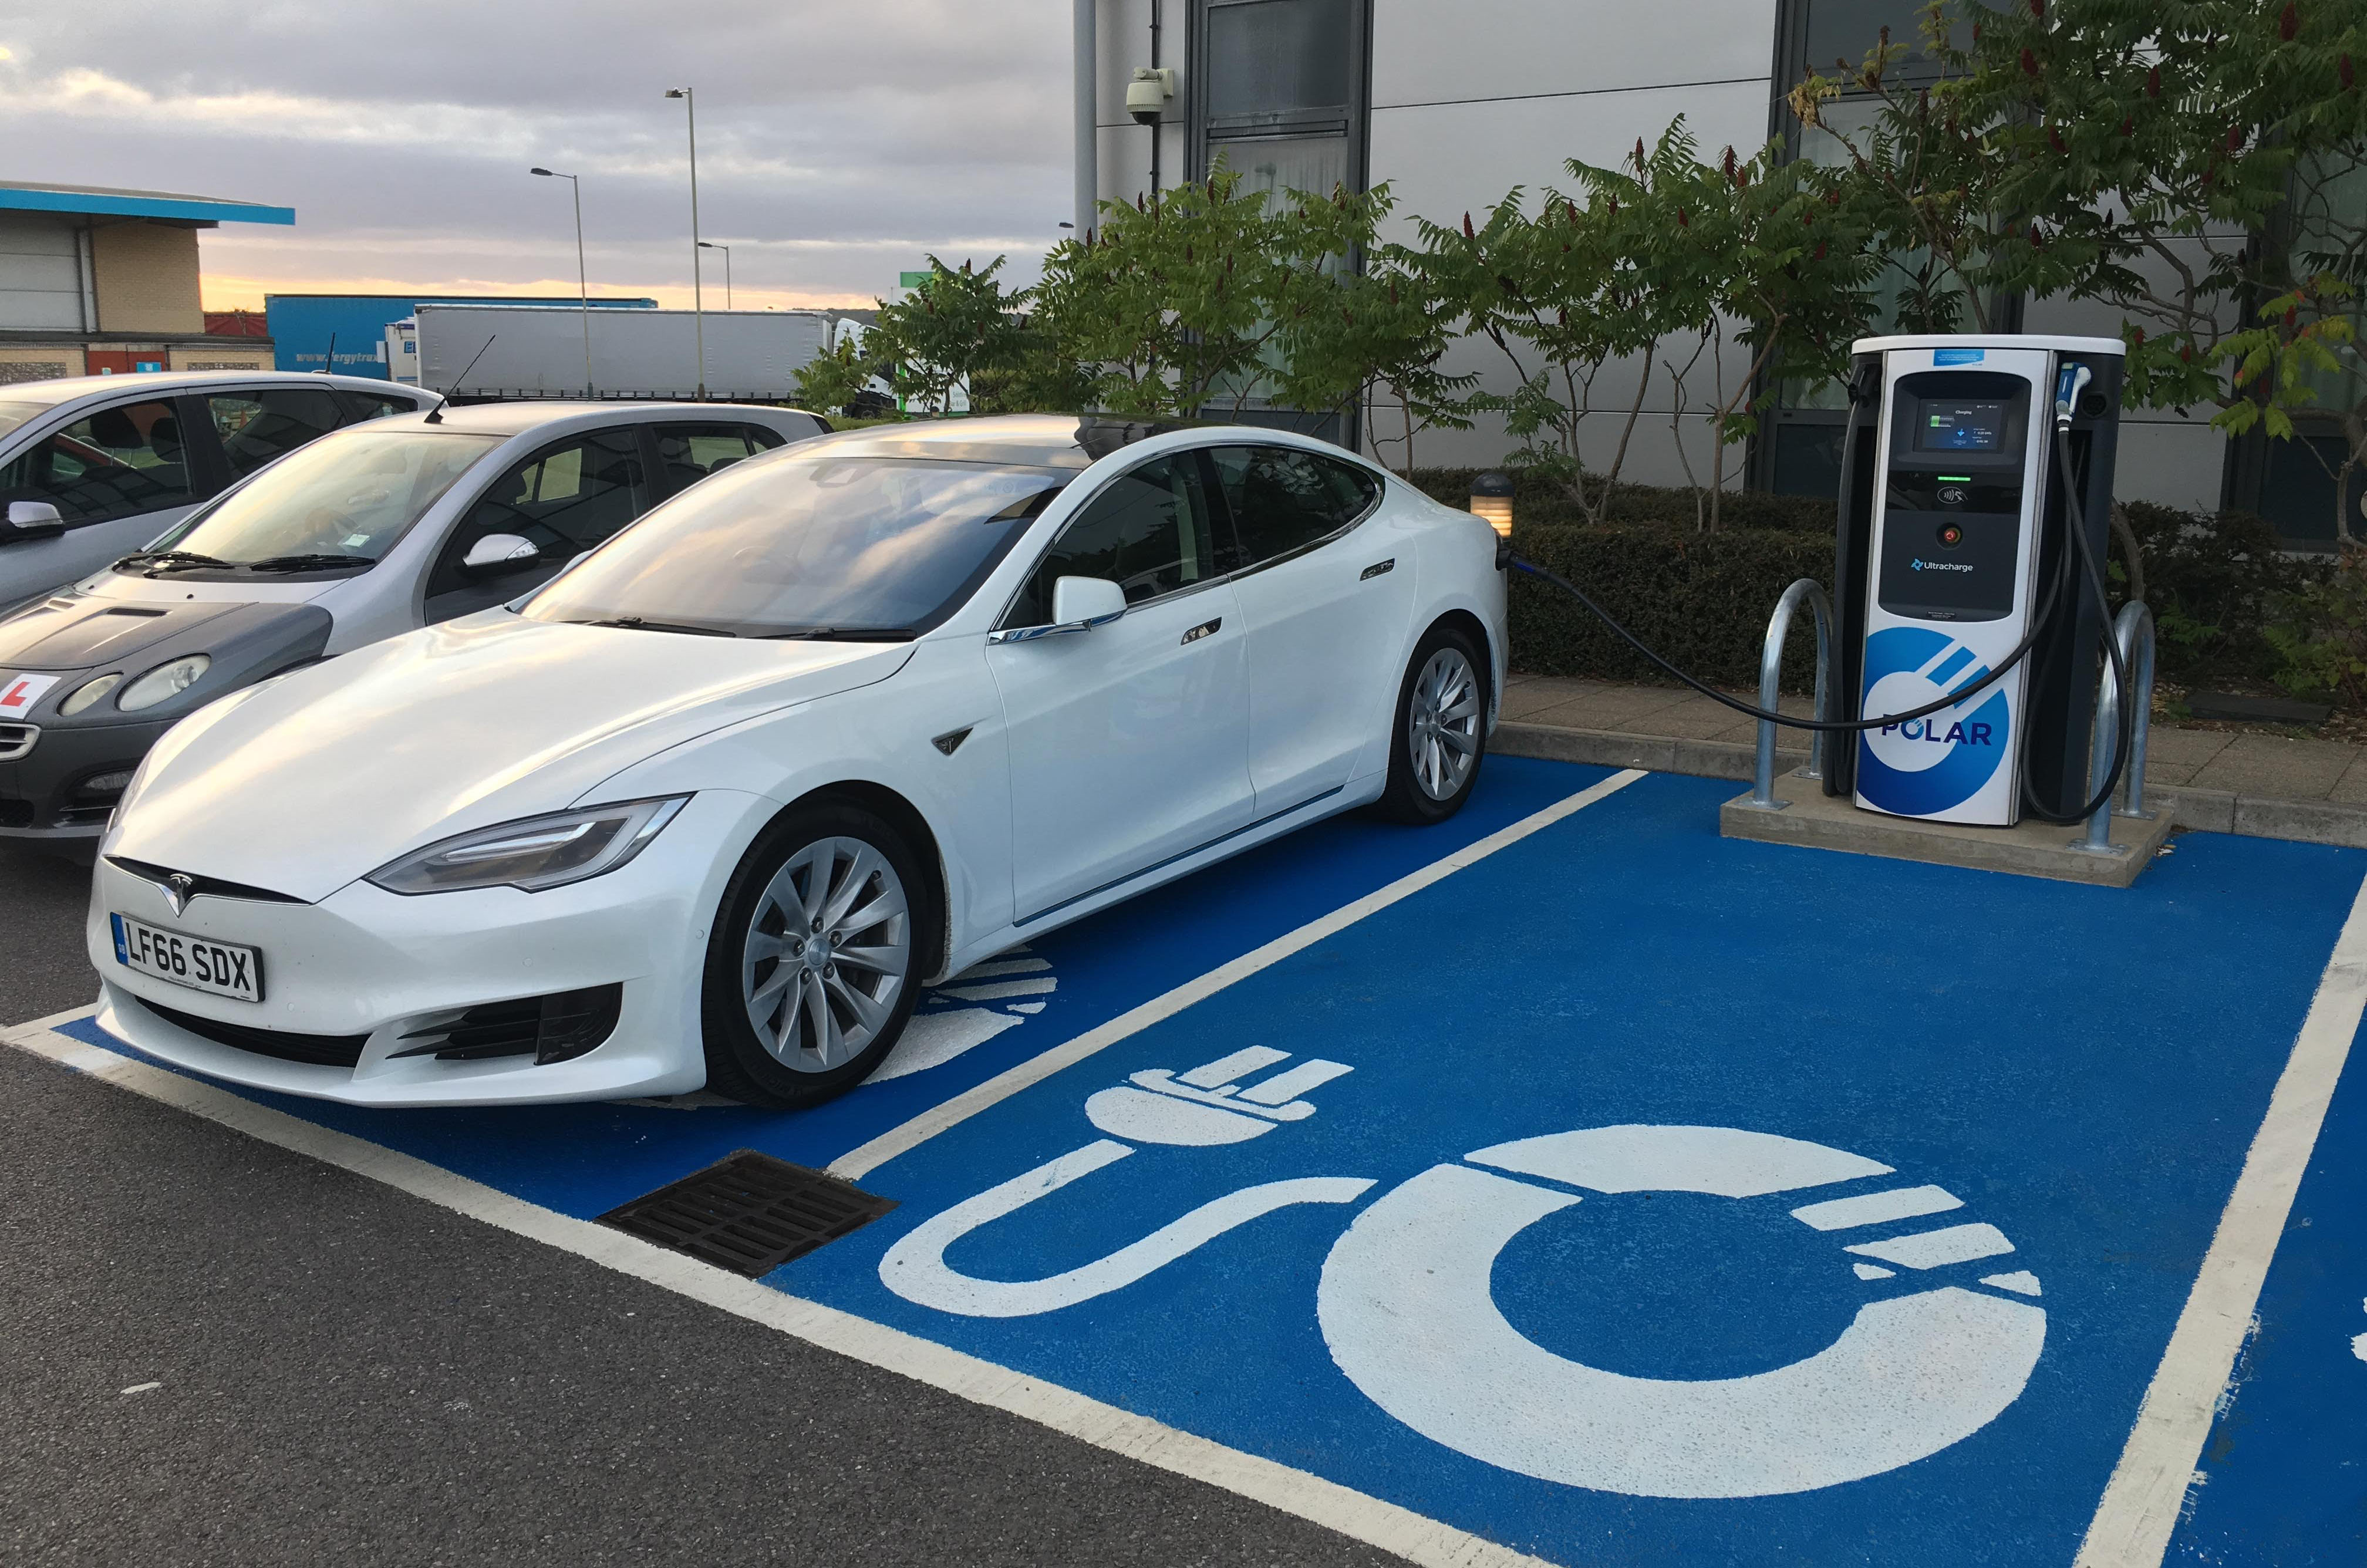 A Tesla Model S charges at the Chargemaster Polar unit at Solstice Park, Wiltshire